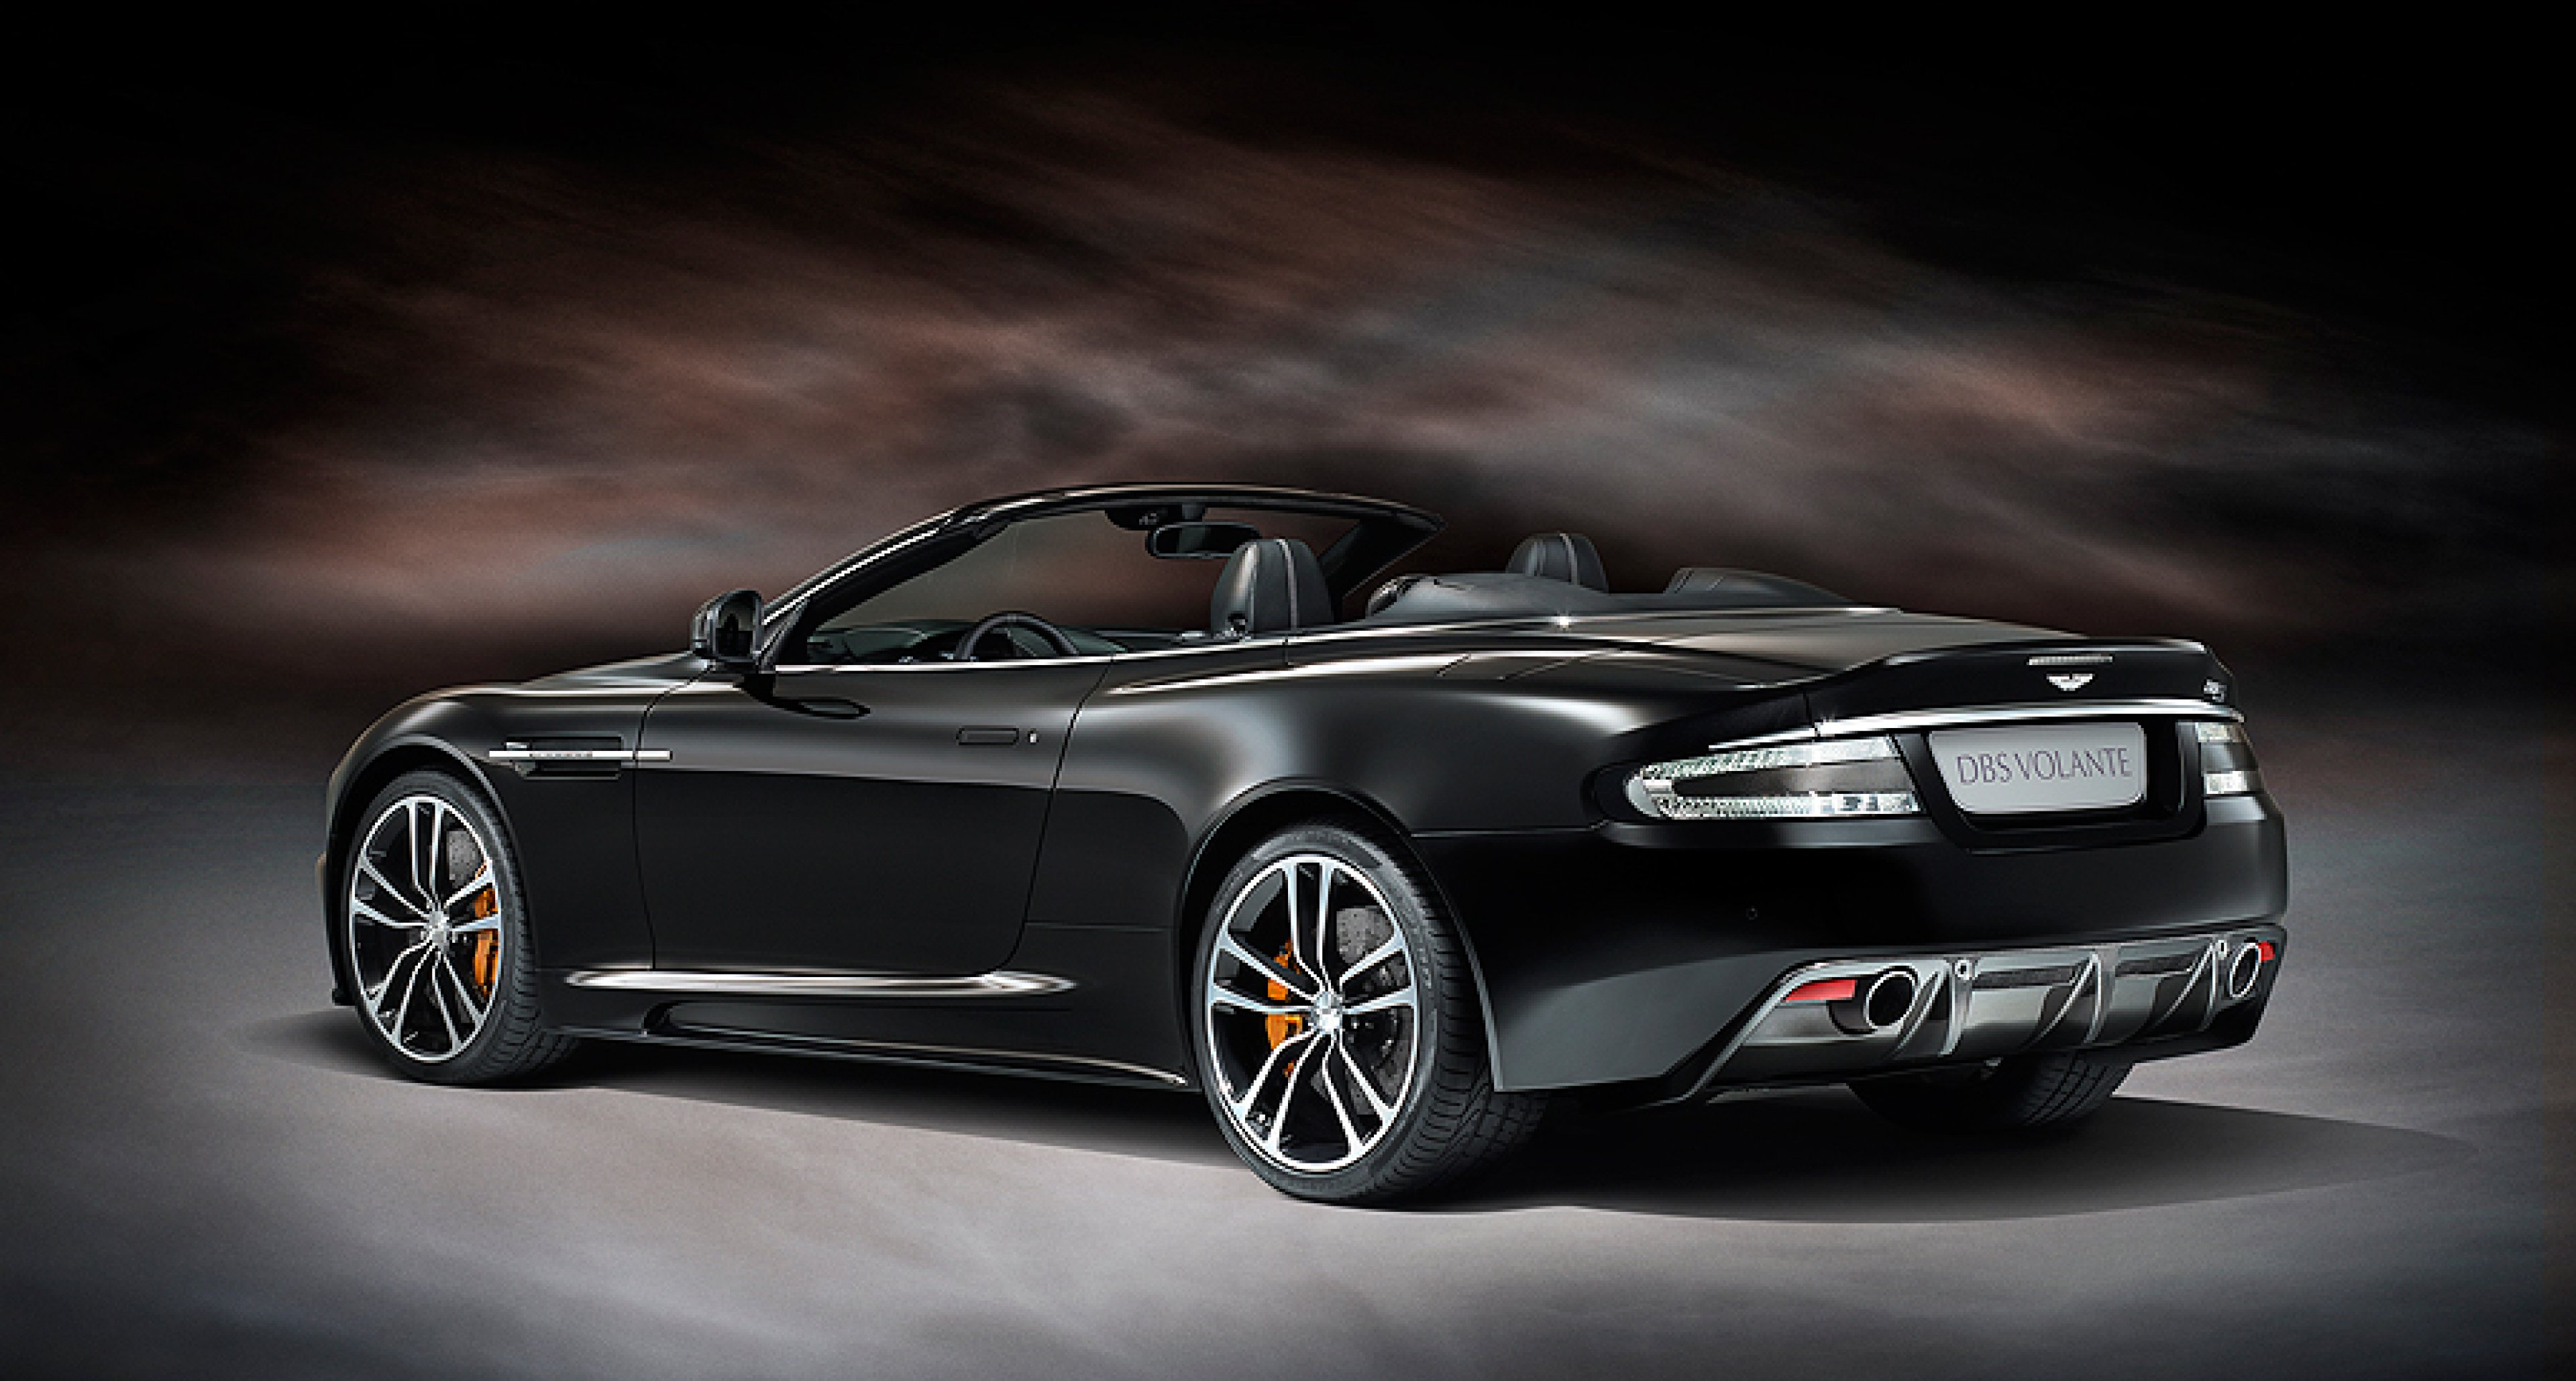 Aston Martin at the 2011 Frankfurt Show: New DBS Carbon Edition